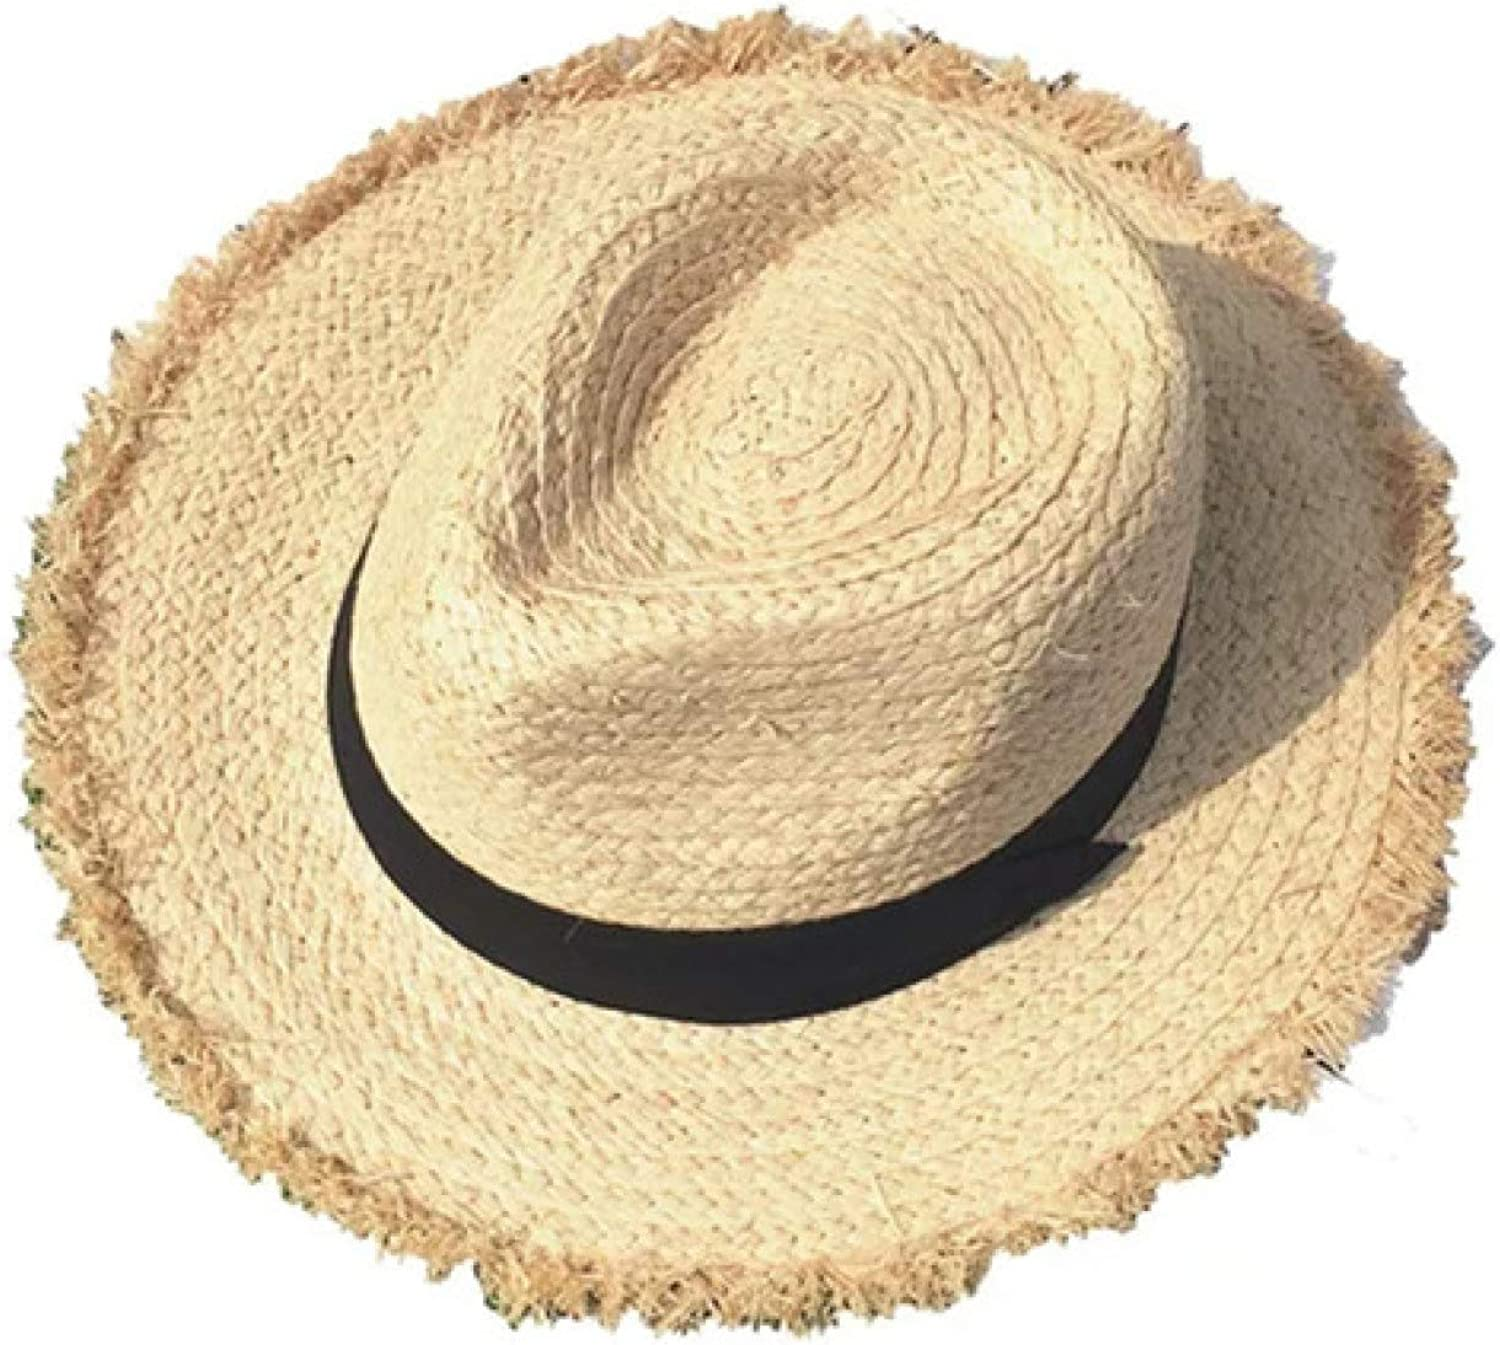 ASO-SLING Womens Straw Jazz Hat Breathable Sunshade Wide Brim Fedoras Straw Beach Hat UV Protection Cowboy Hat for Summer